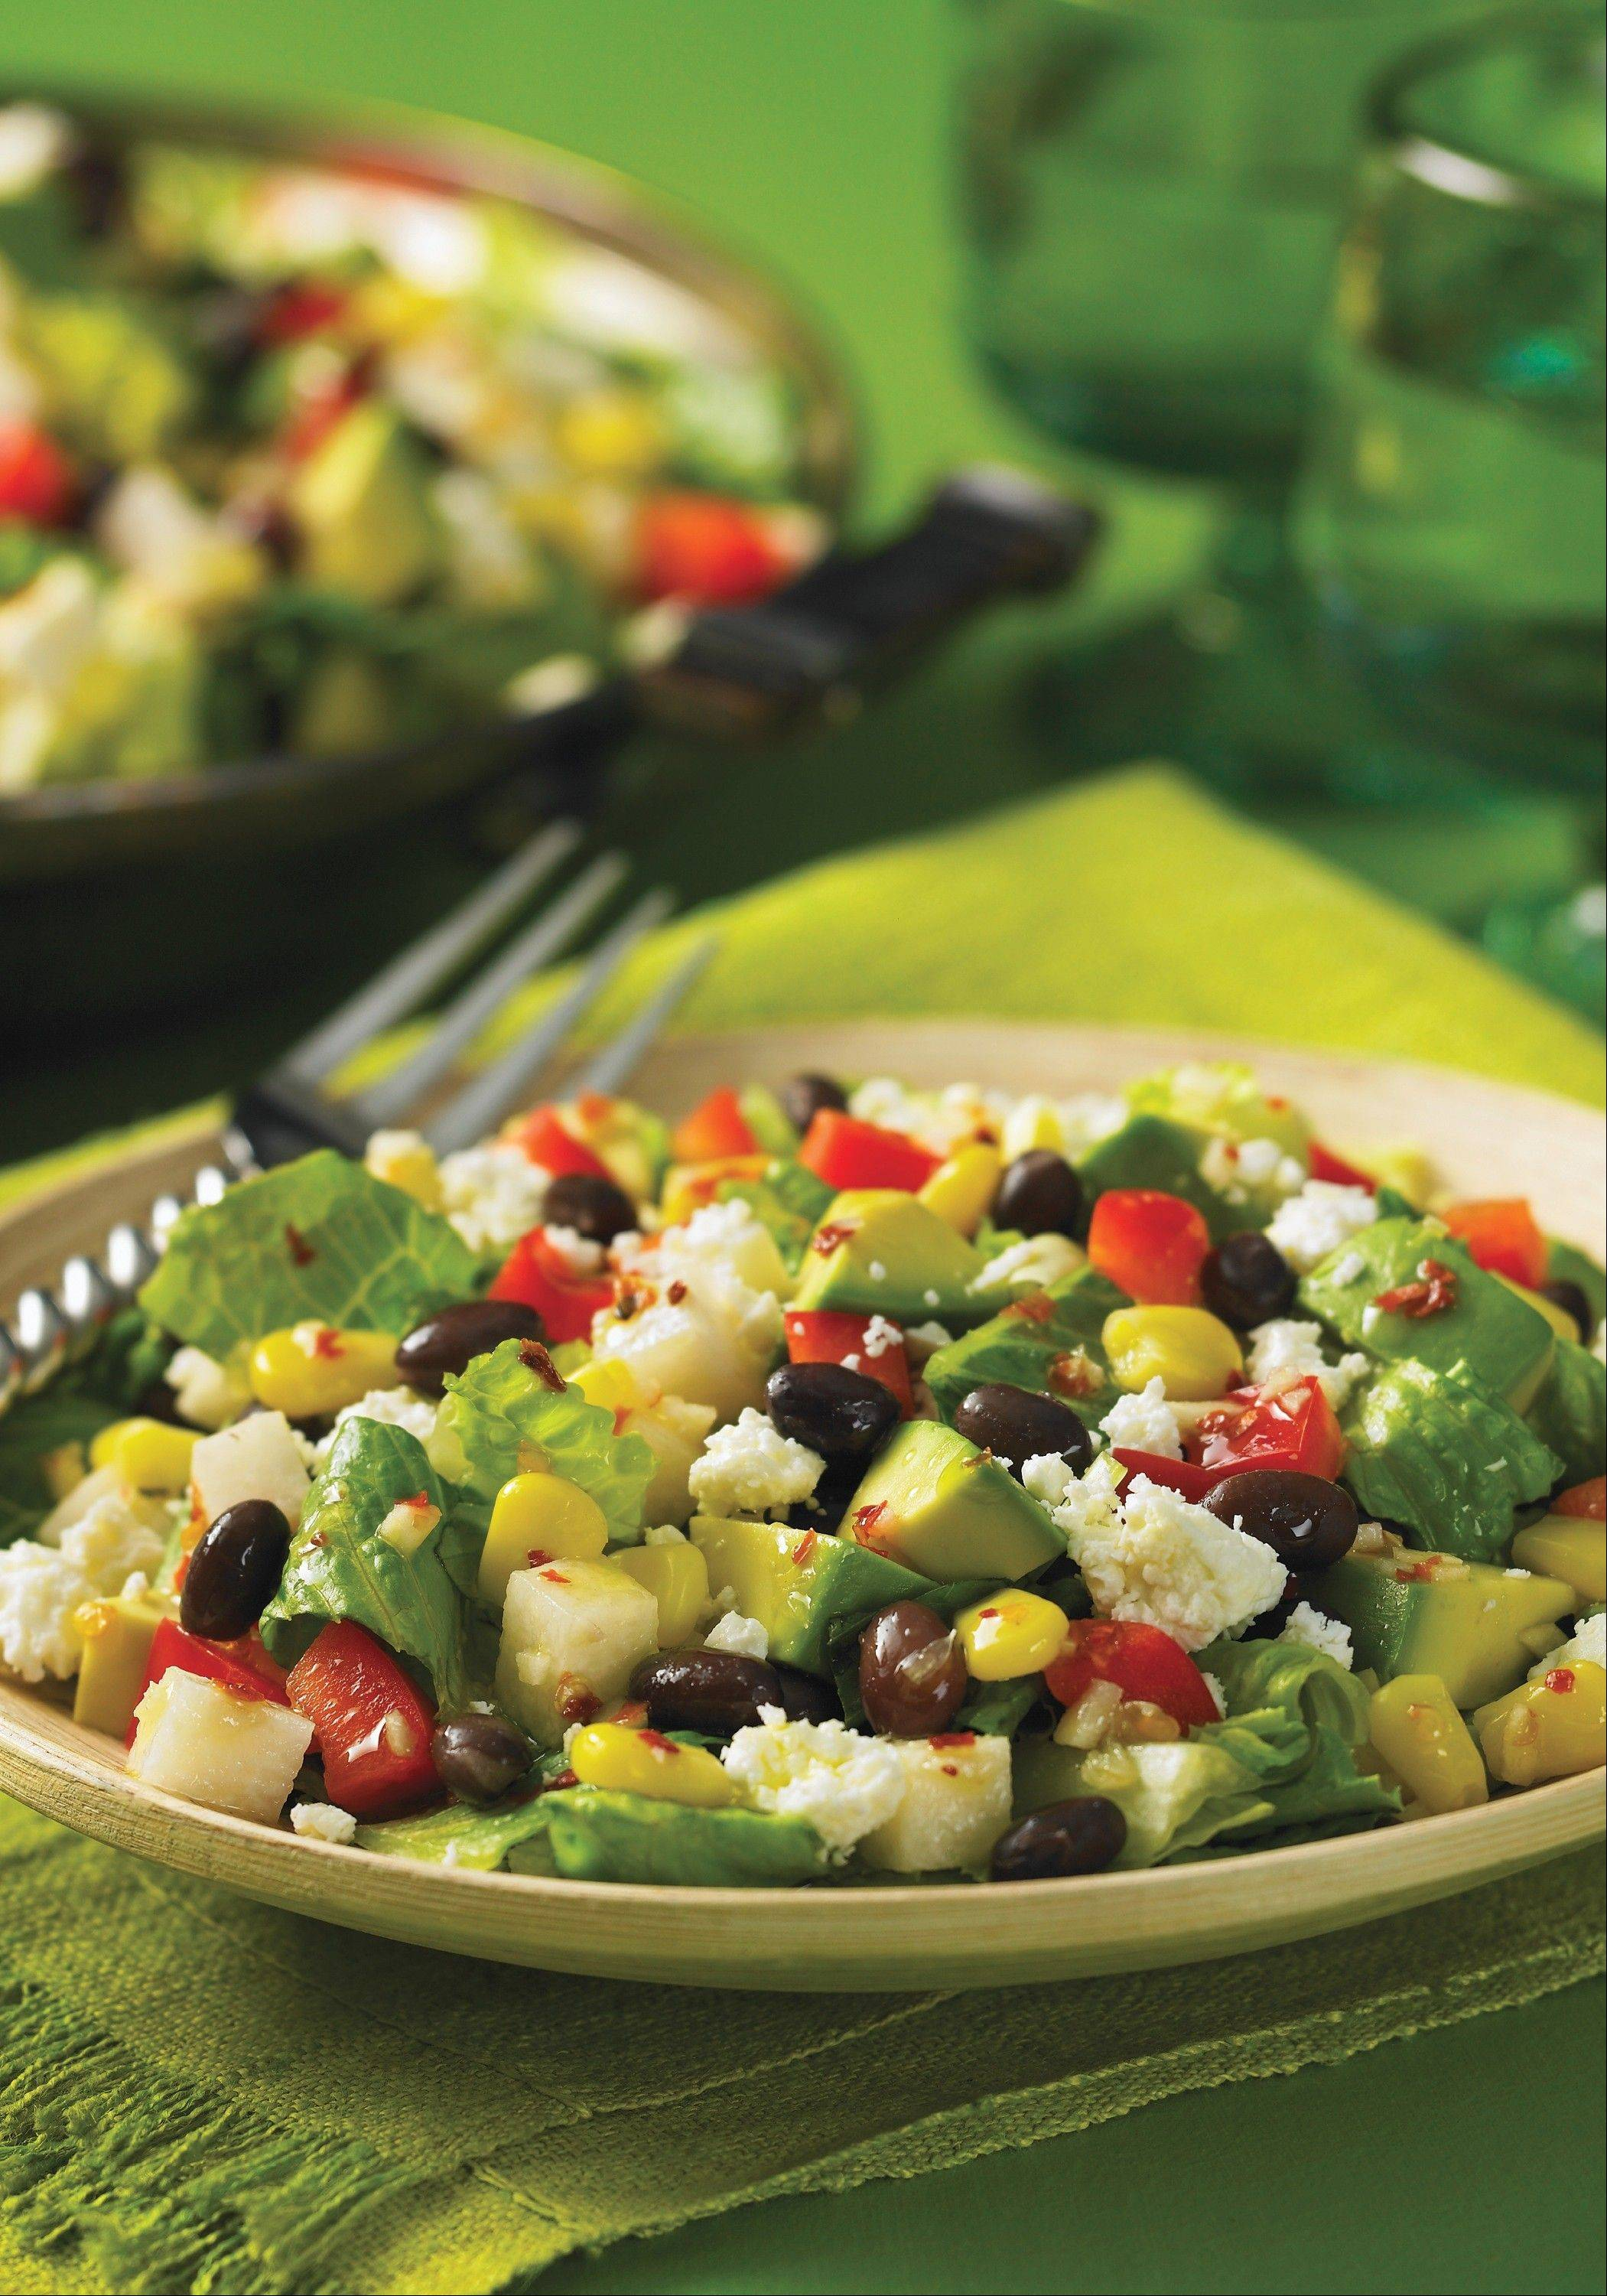 Grated cotija cheese tops a Mexican-style chopped salad.